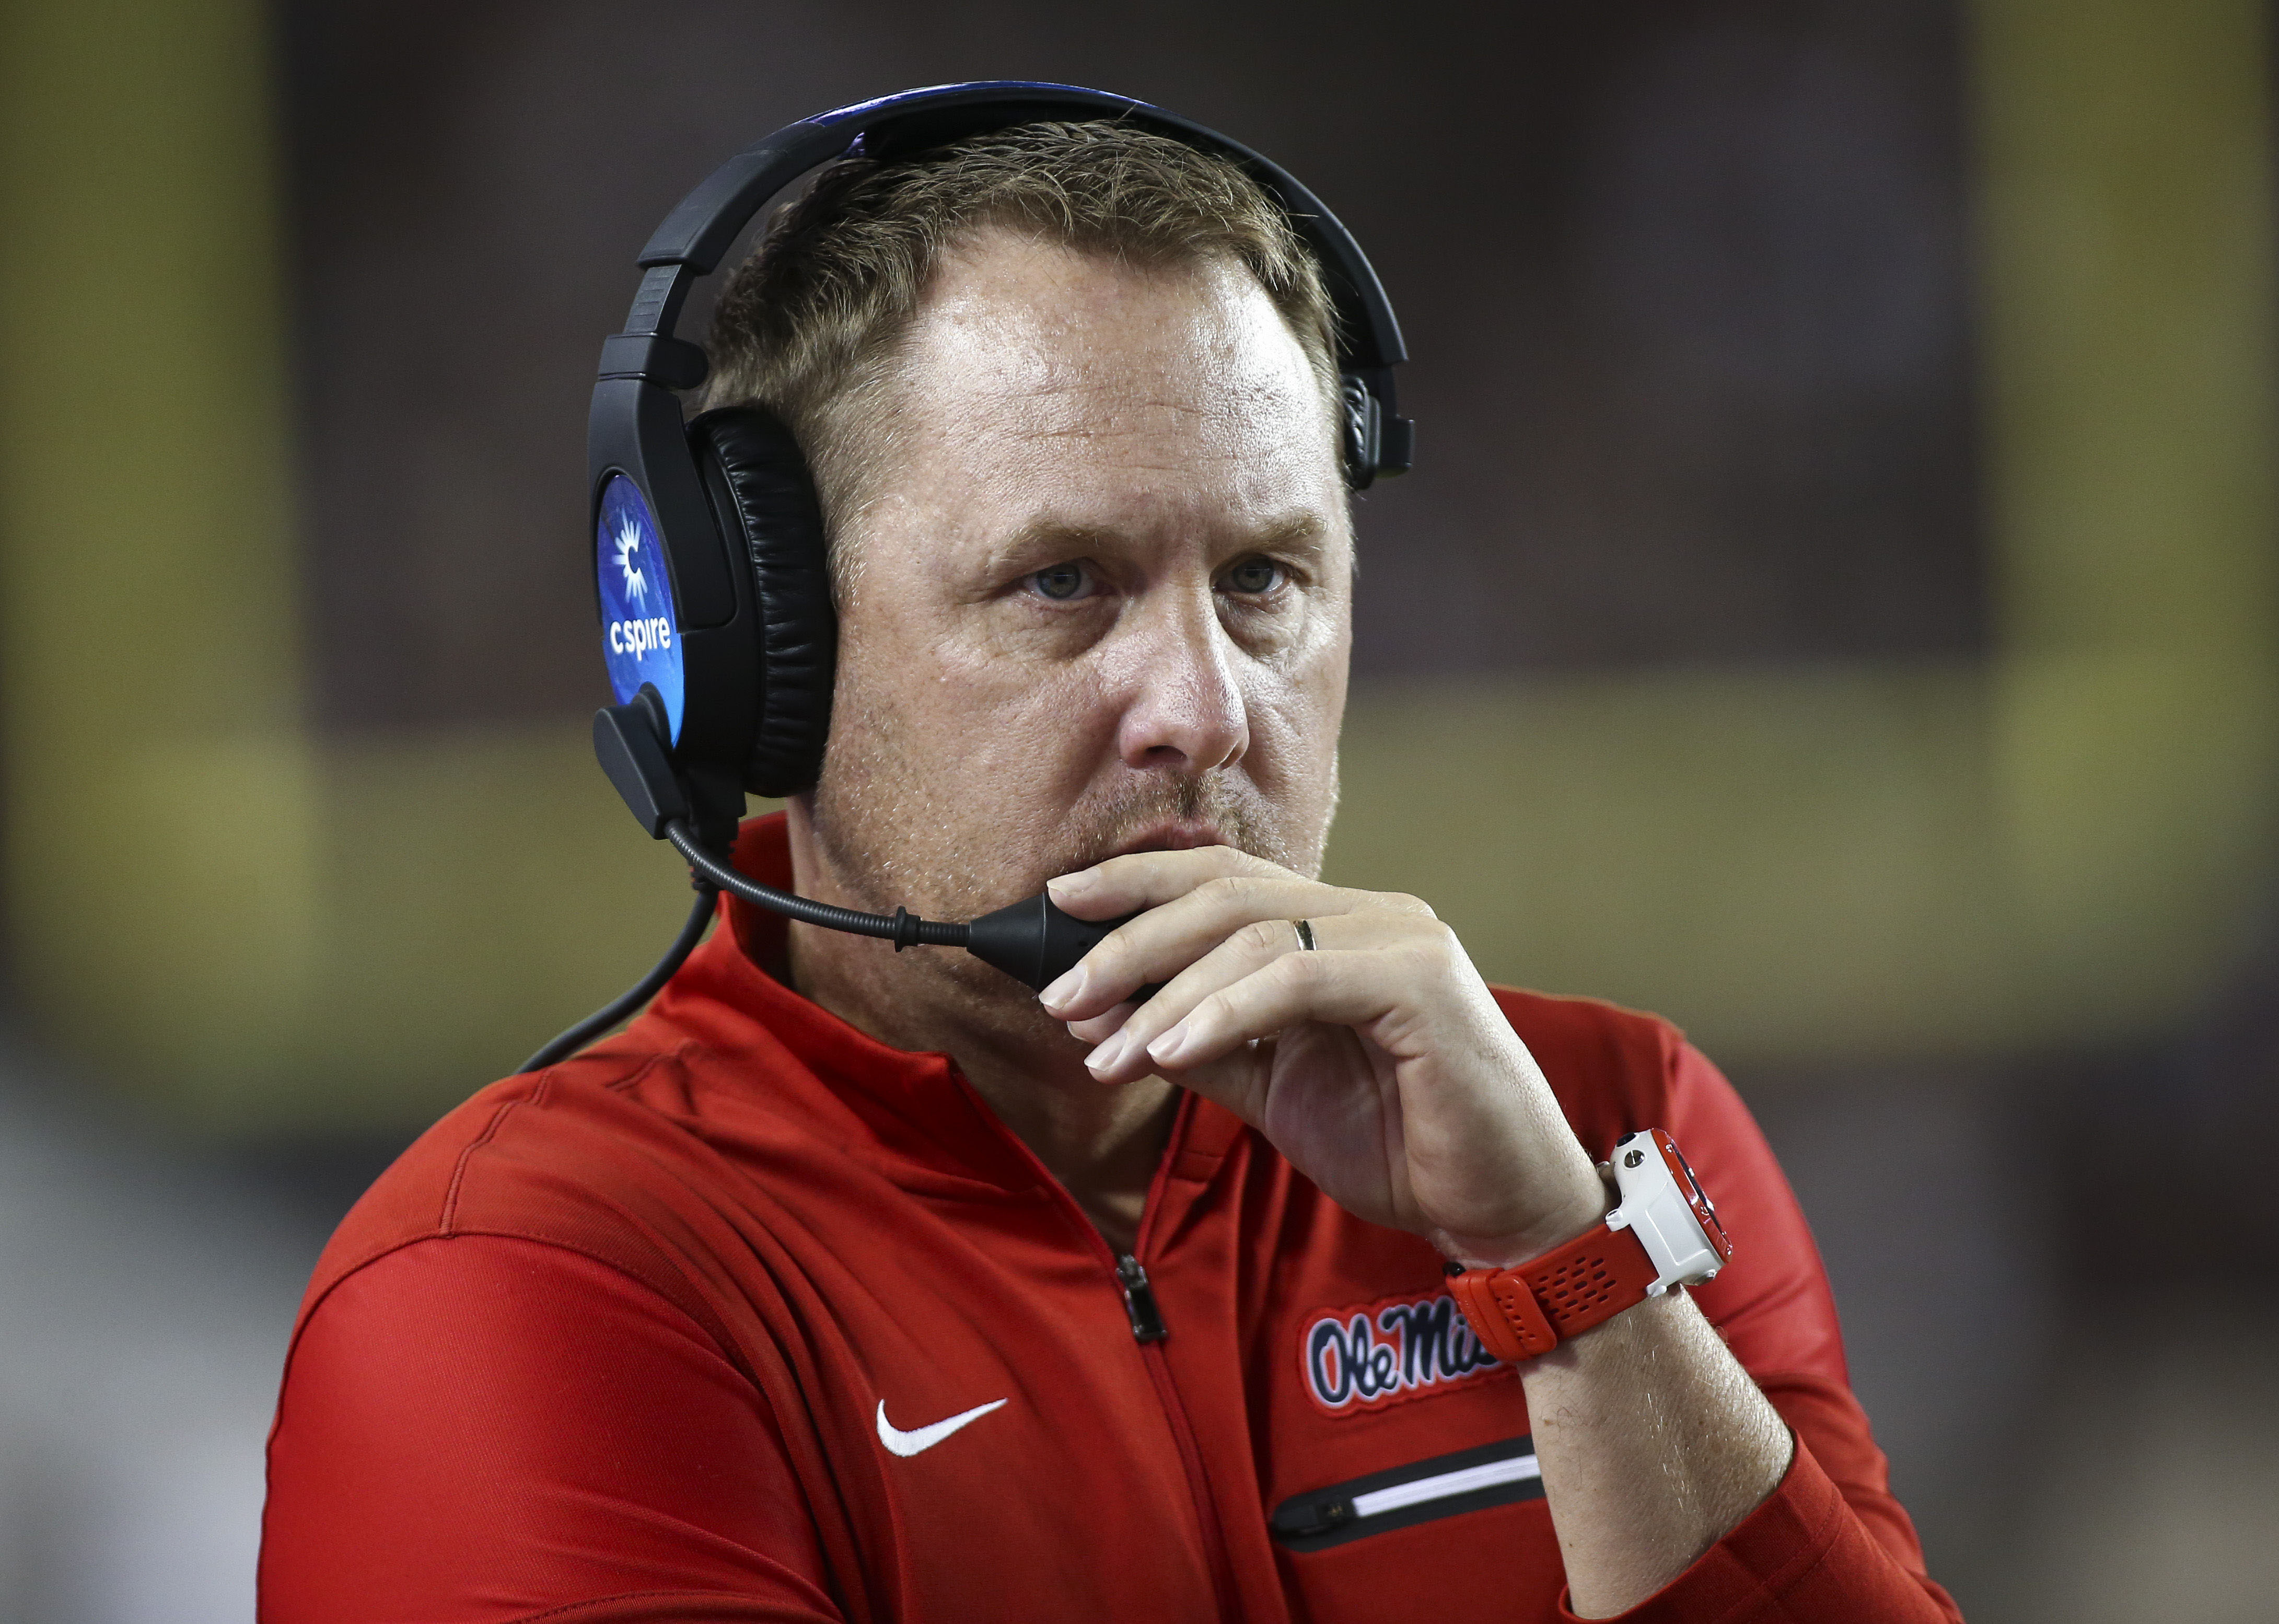 Nov 12, 2016; College Station, TX, USA; Mississippi Rebels head coach Hugh Freeze during the game against the Texas A&M Aggies at Kyle Field. Mandatory Credit: Troy Taormina-USA TODAY Sports